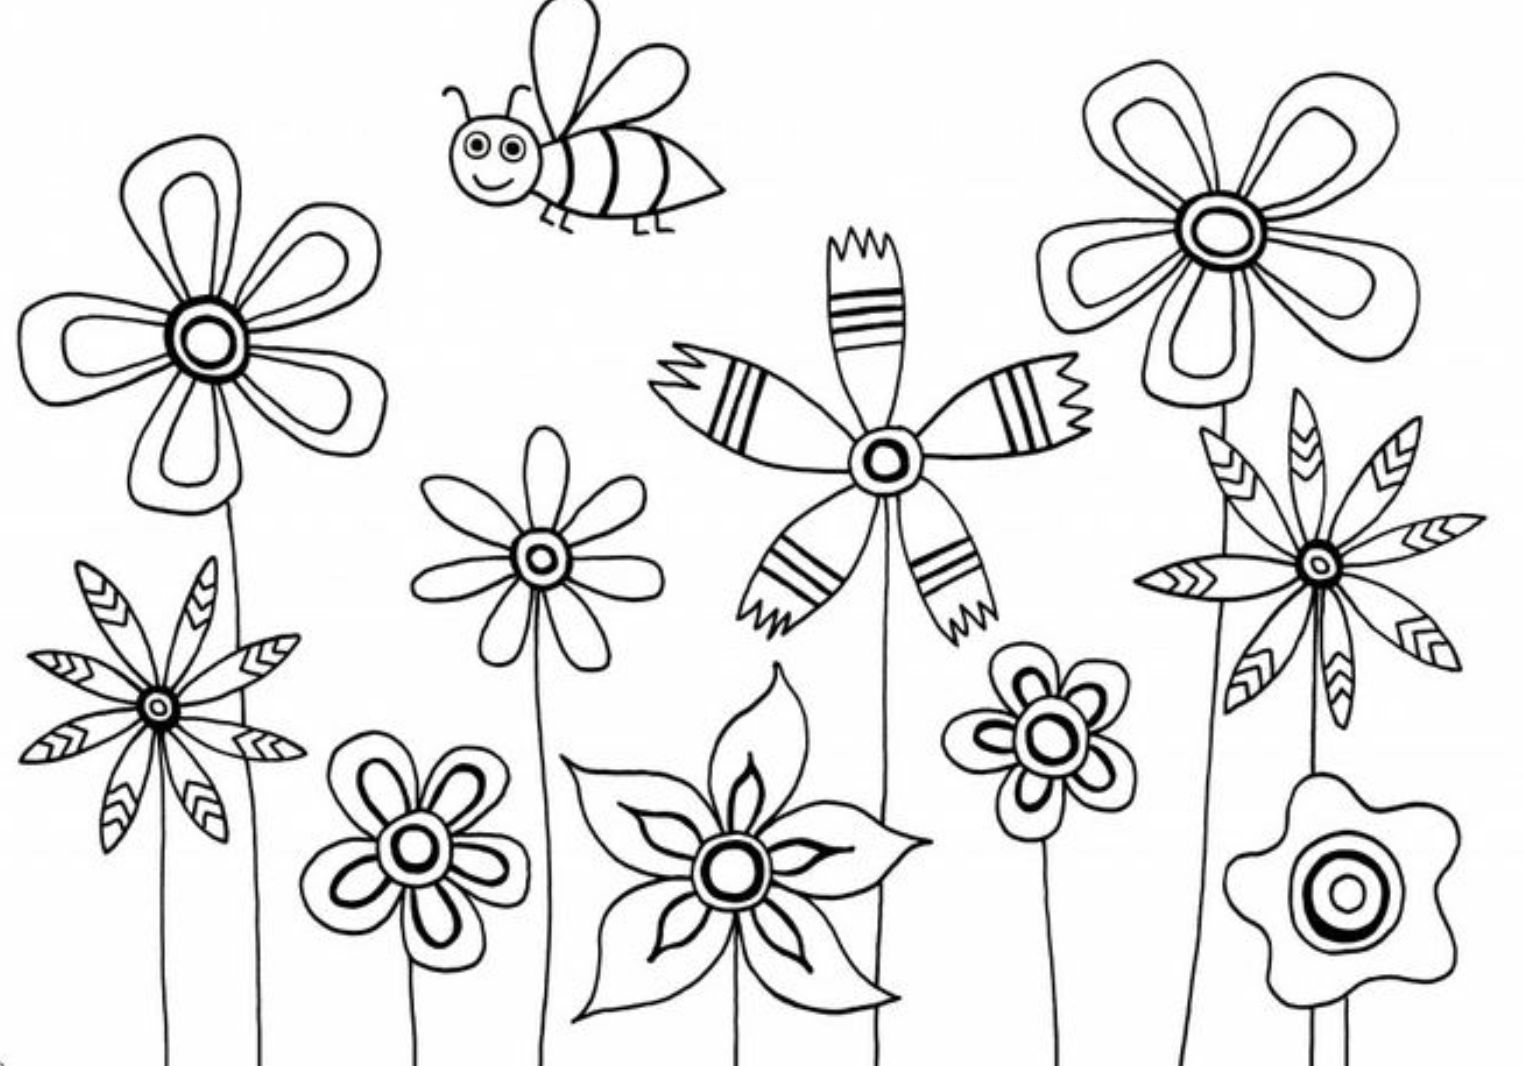 step by step drawing flowers for kids at getdrawings com